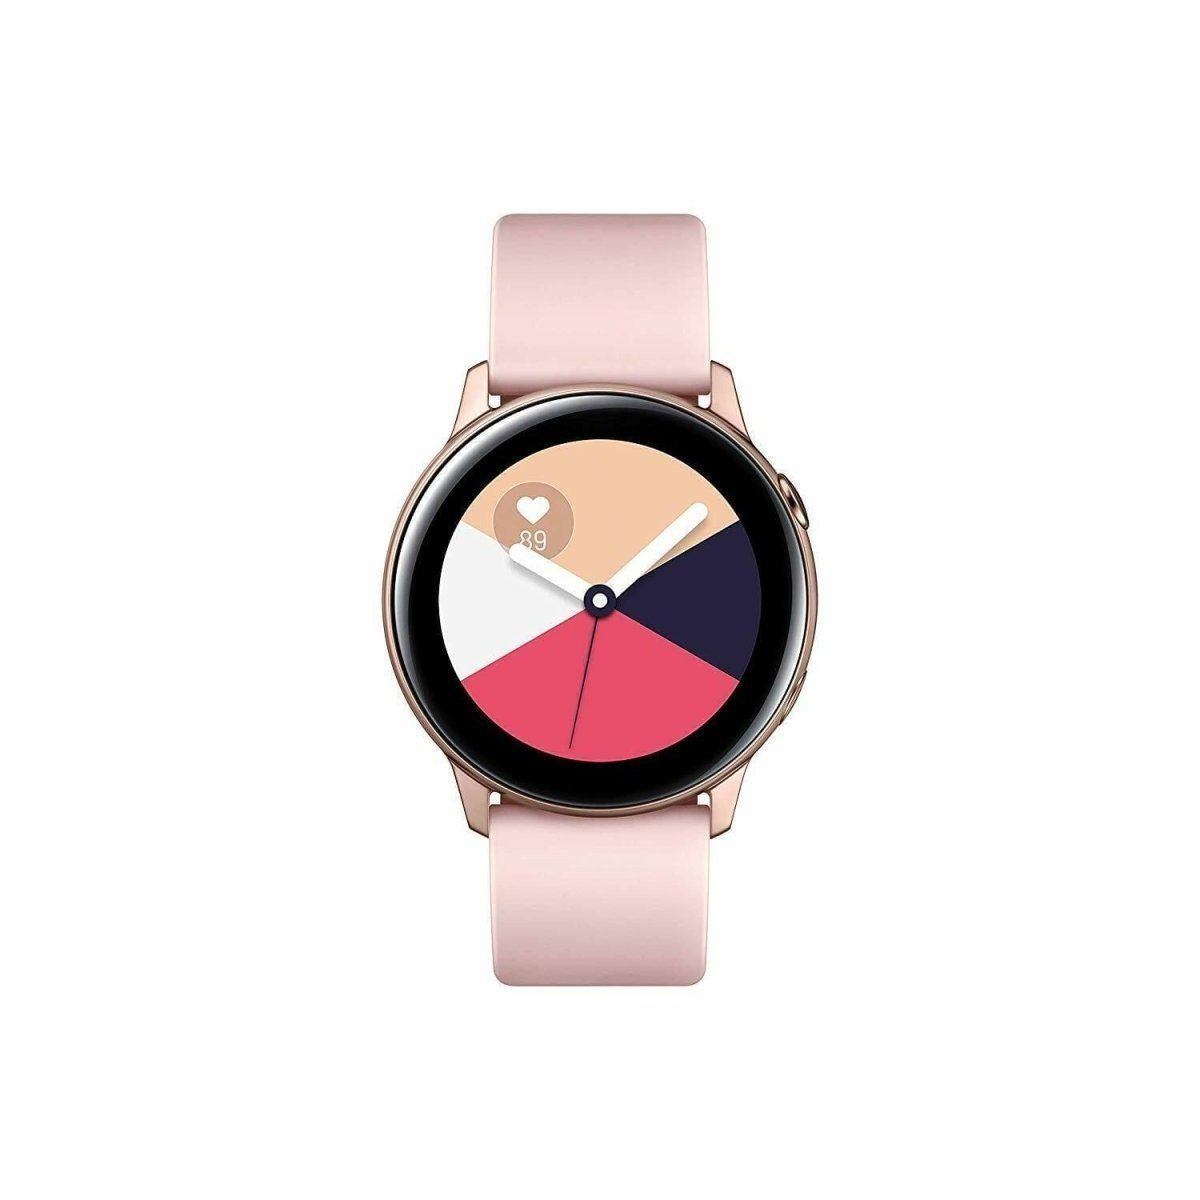 Samsung SM-R500NZDAXAR Galaxy Watch Active (40mm) Rose Gold - Fix Or Cell Now Device Shop